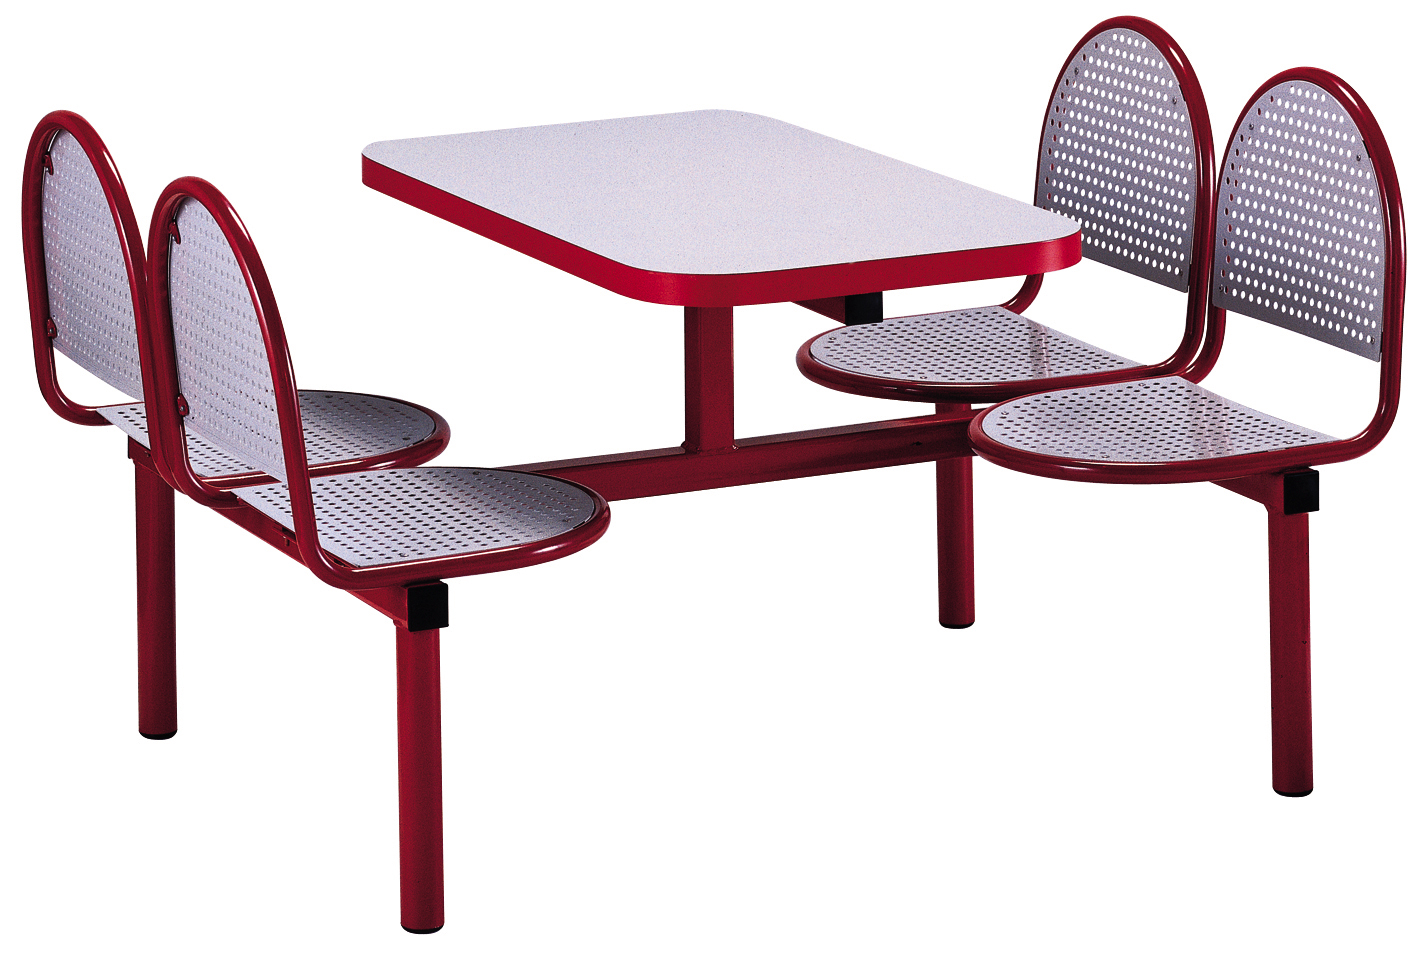 Boston Canteen Seating Unit Simply Tables & Chairs